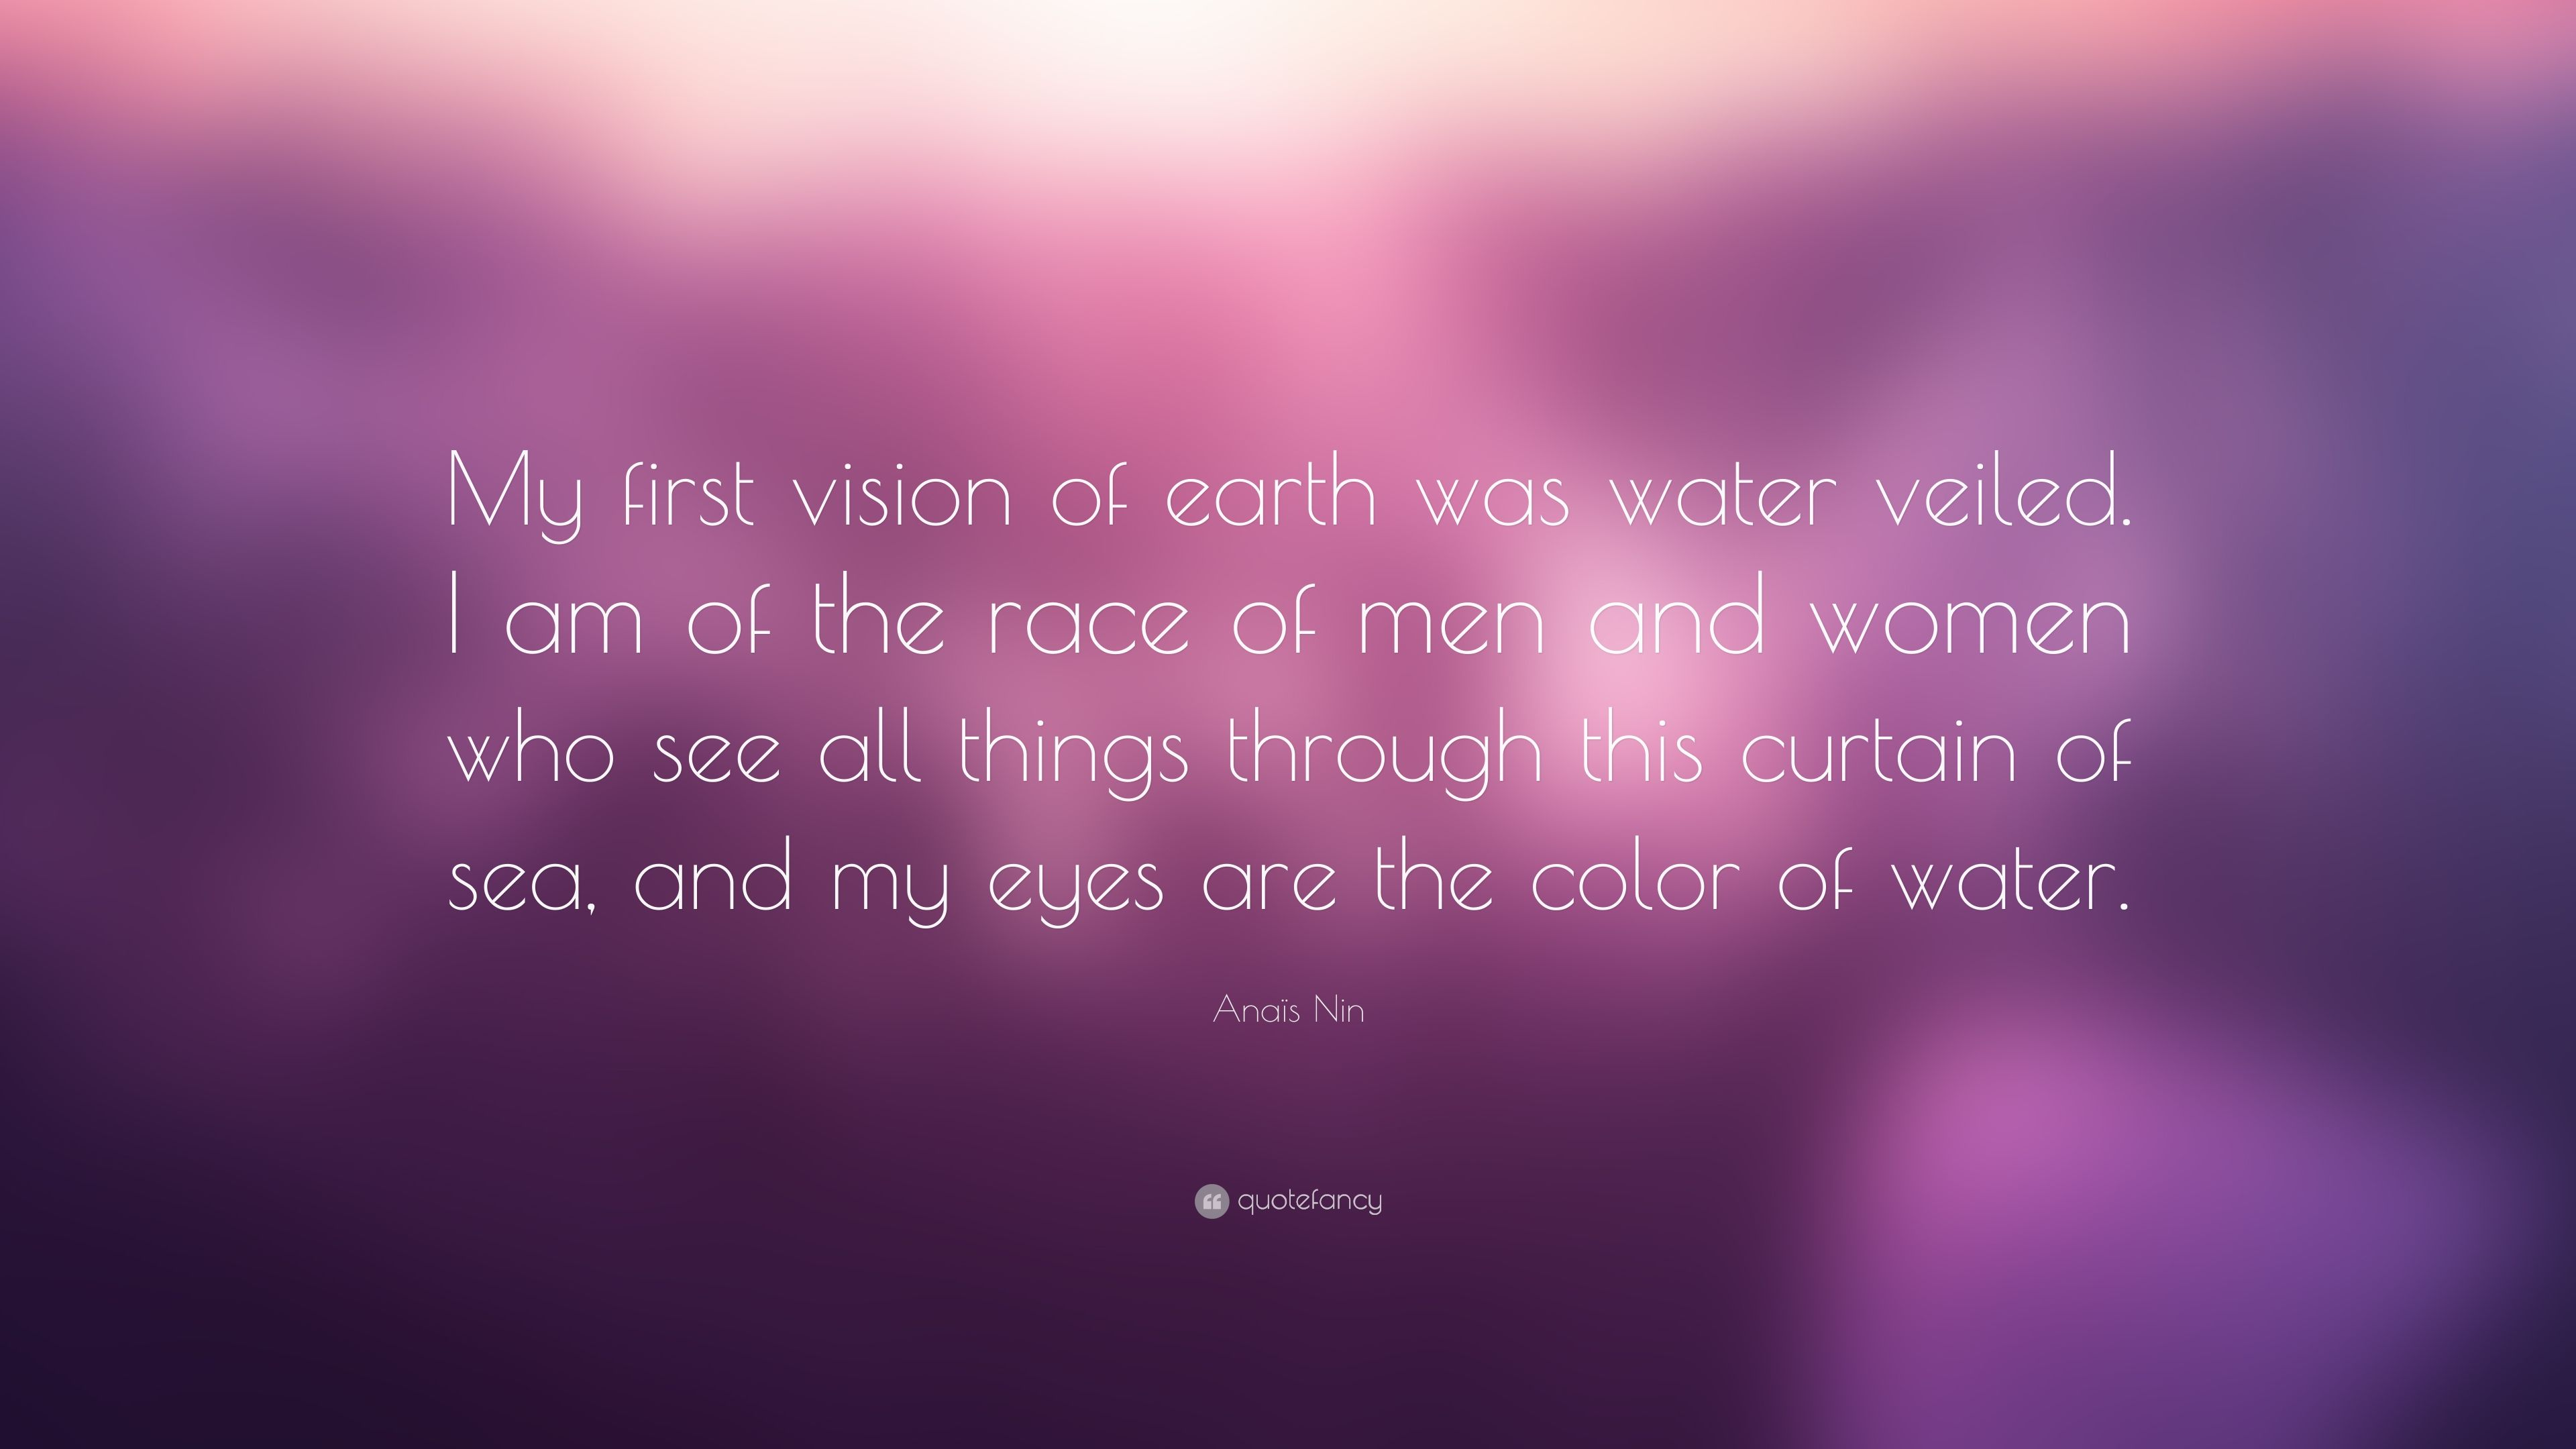 Anaïs Nin Quote My First Vision Of Earth Was Water Veiled I Am Quotes From The Color Of Water About Race With Page Numbers